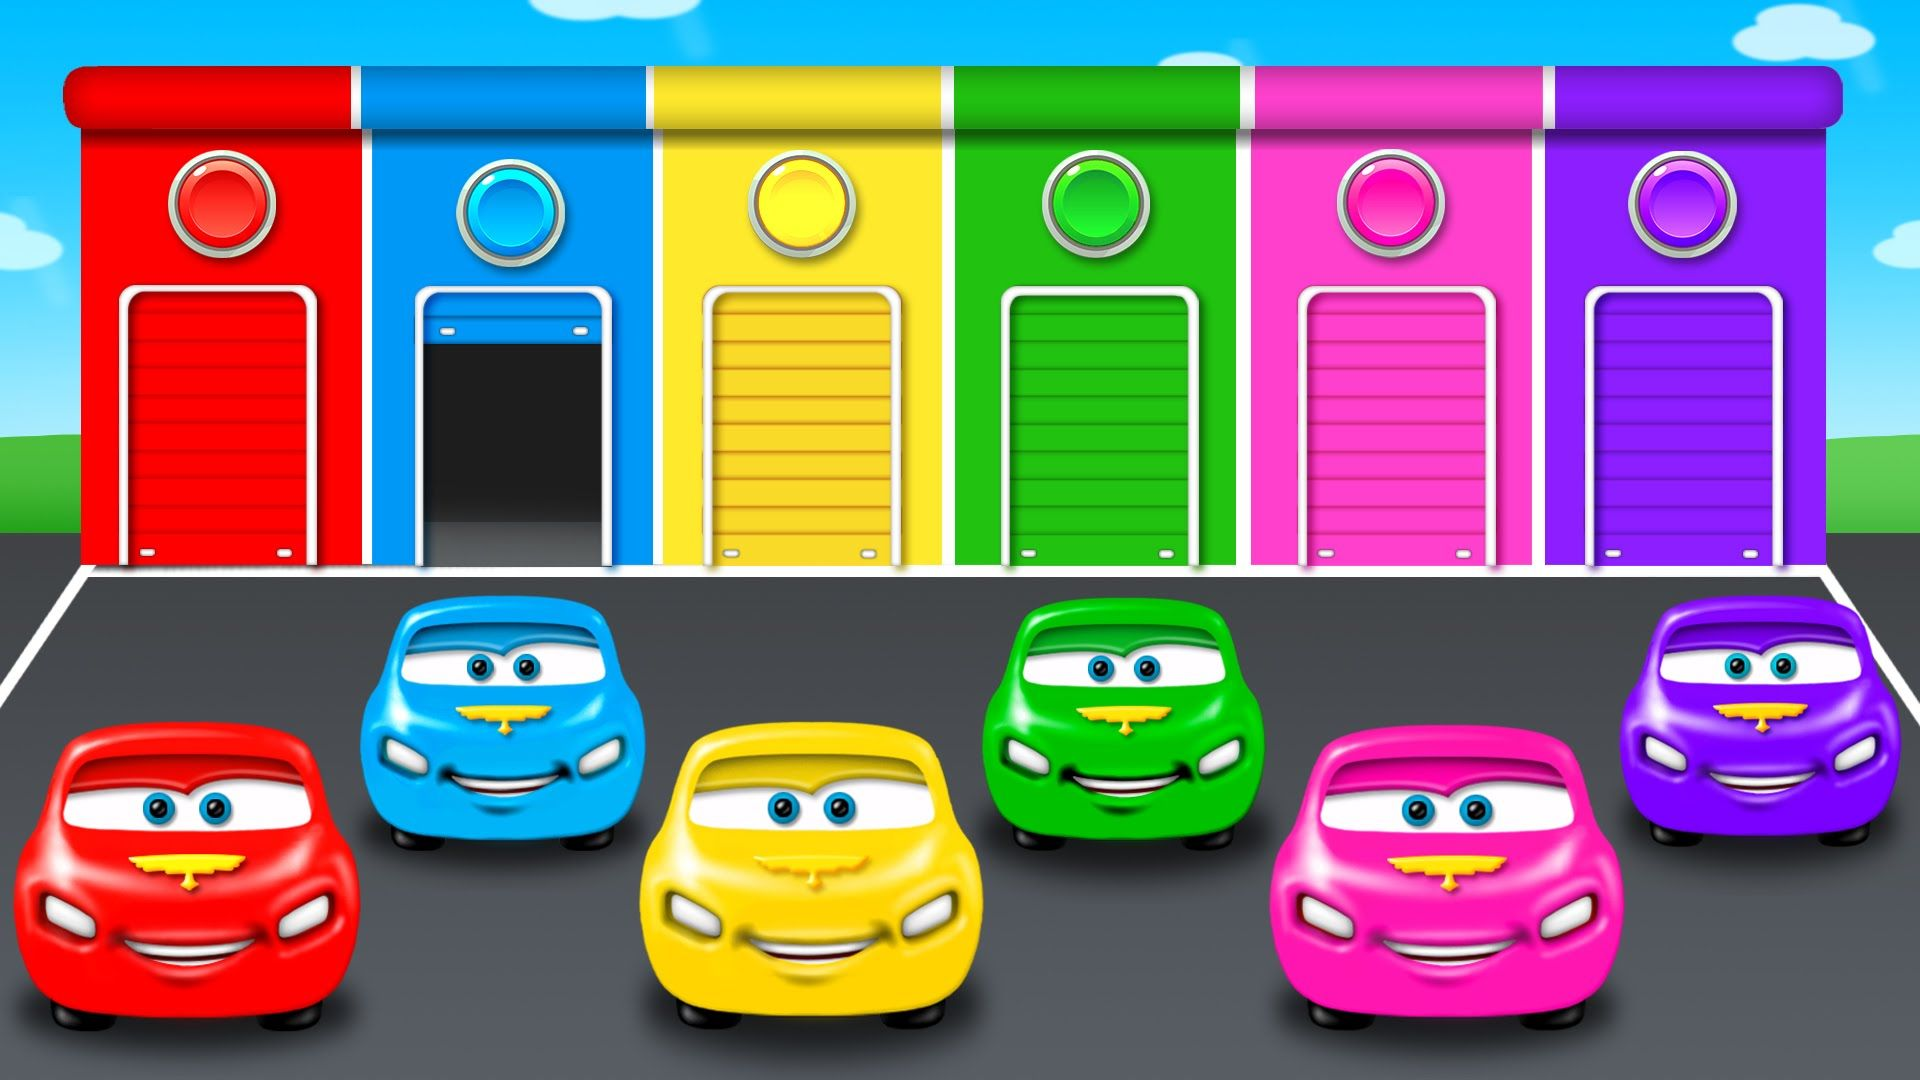 Colors For Children To Learn With Color Car Toy Colours For Kids To Learn Learning Videos Coloring For Kids Learning Colors Learning Games For Kids